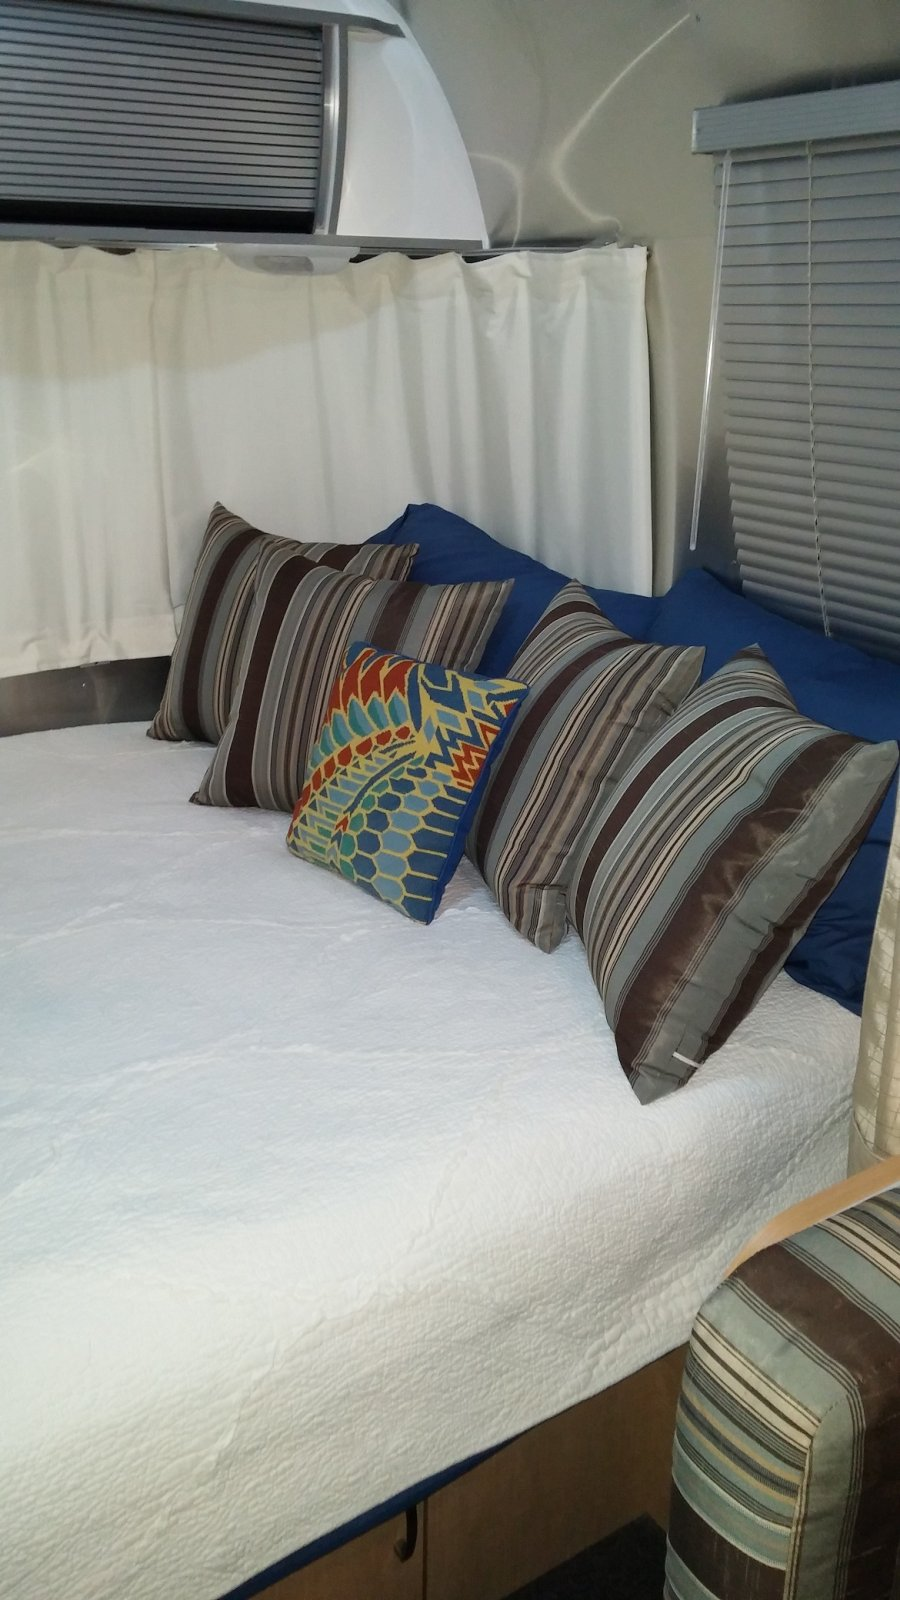 Click image for larger version  Name:Airstream Pillow 2.jpg Views:89 Size:206.7 KB ID:229381